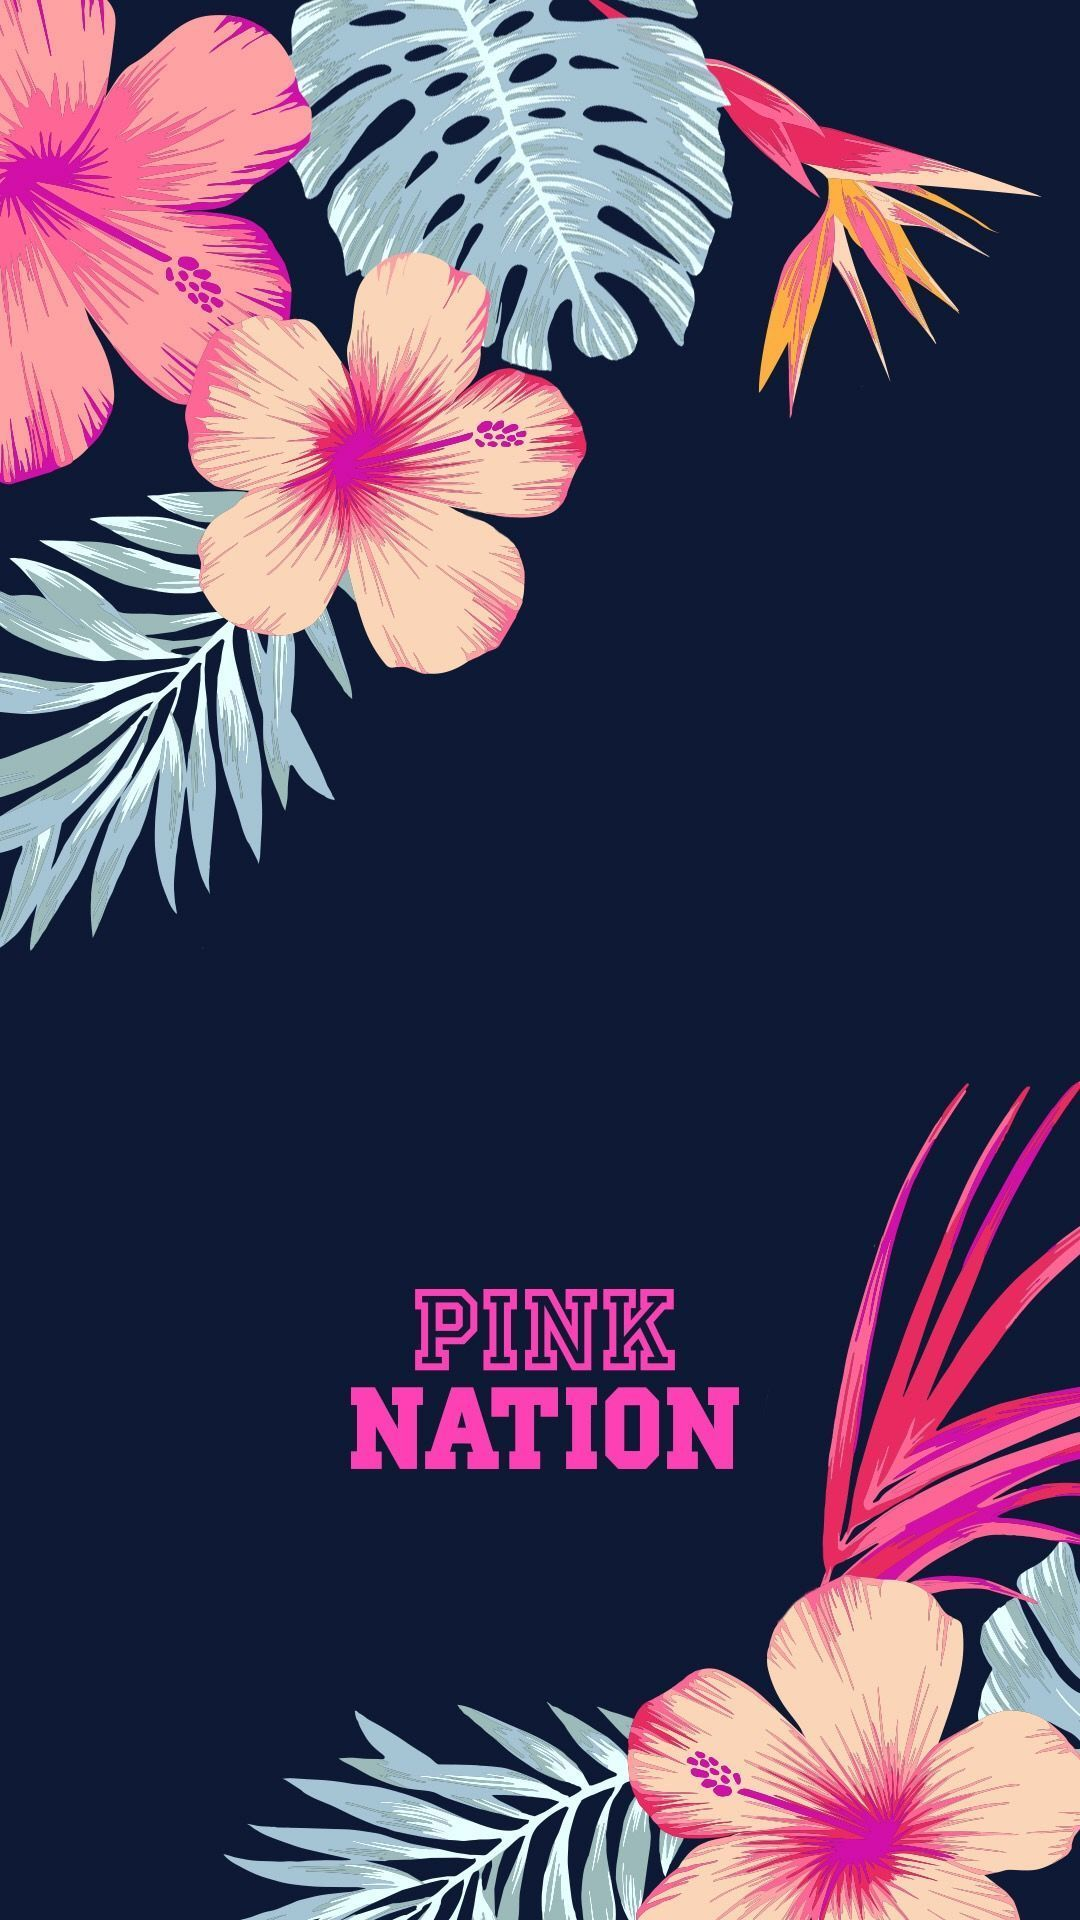 1080x1920 60+ Pink Nation Wallpapers - Download at WallpaperBro